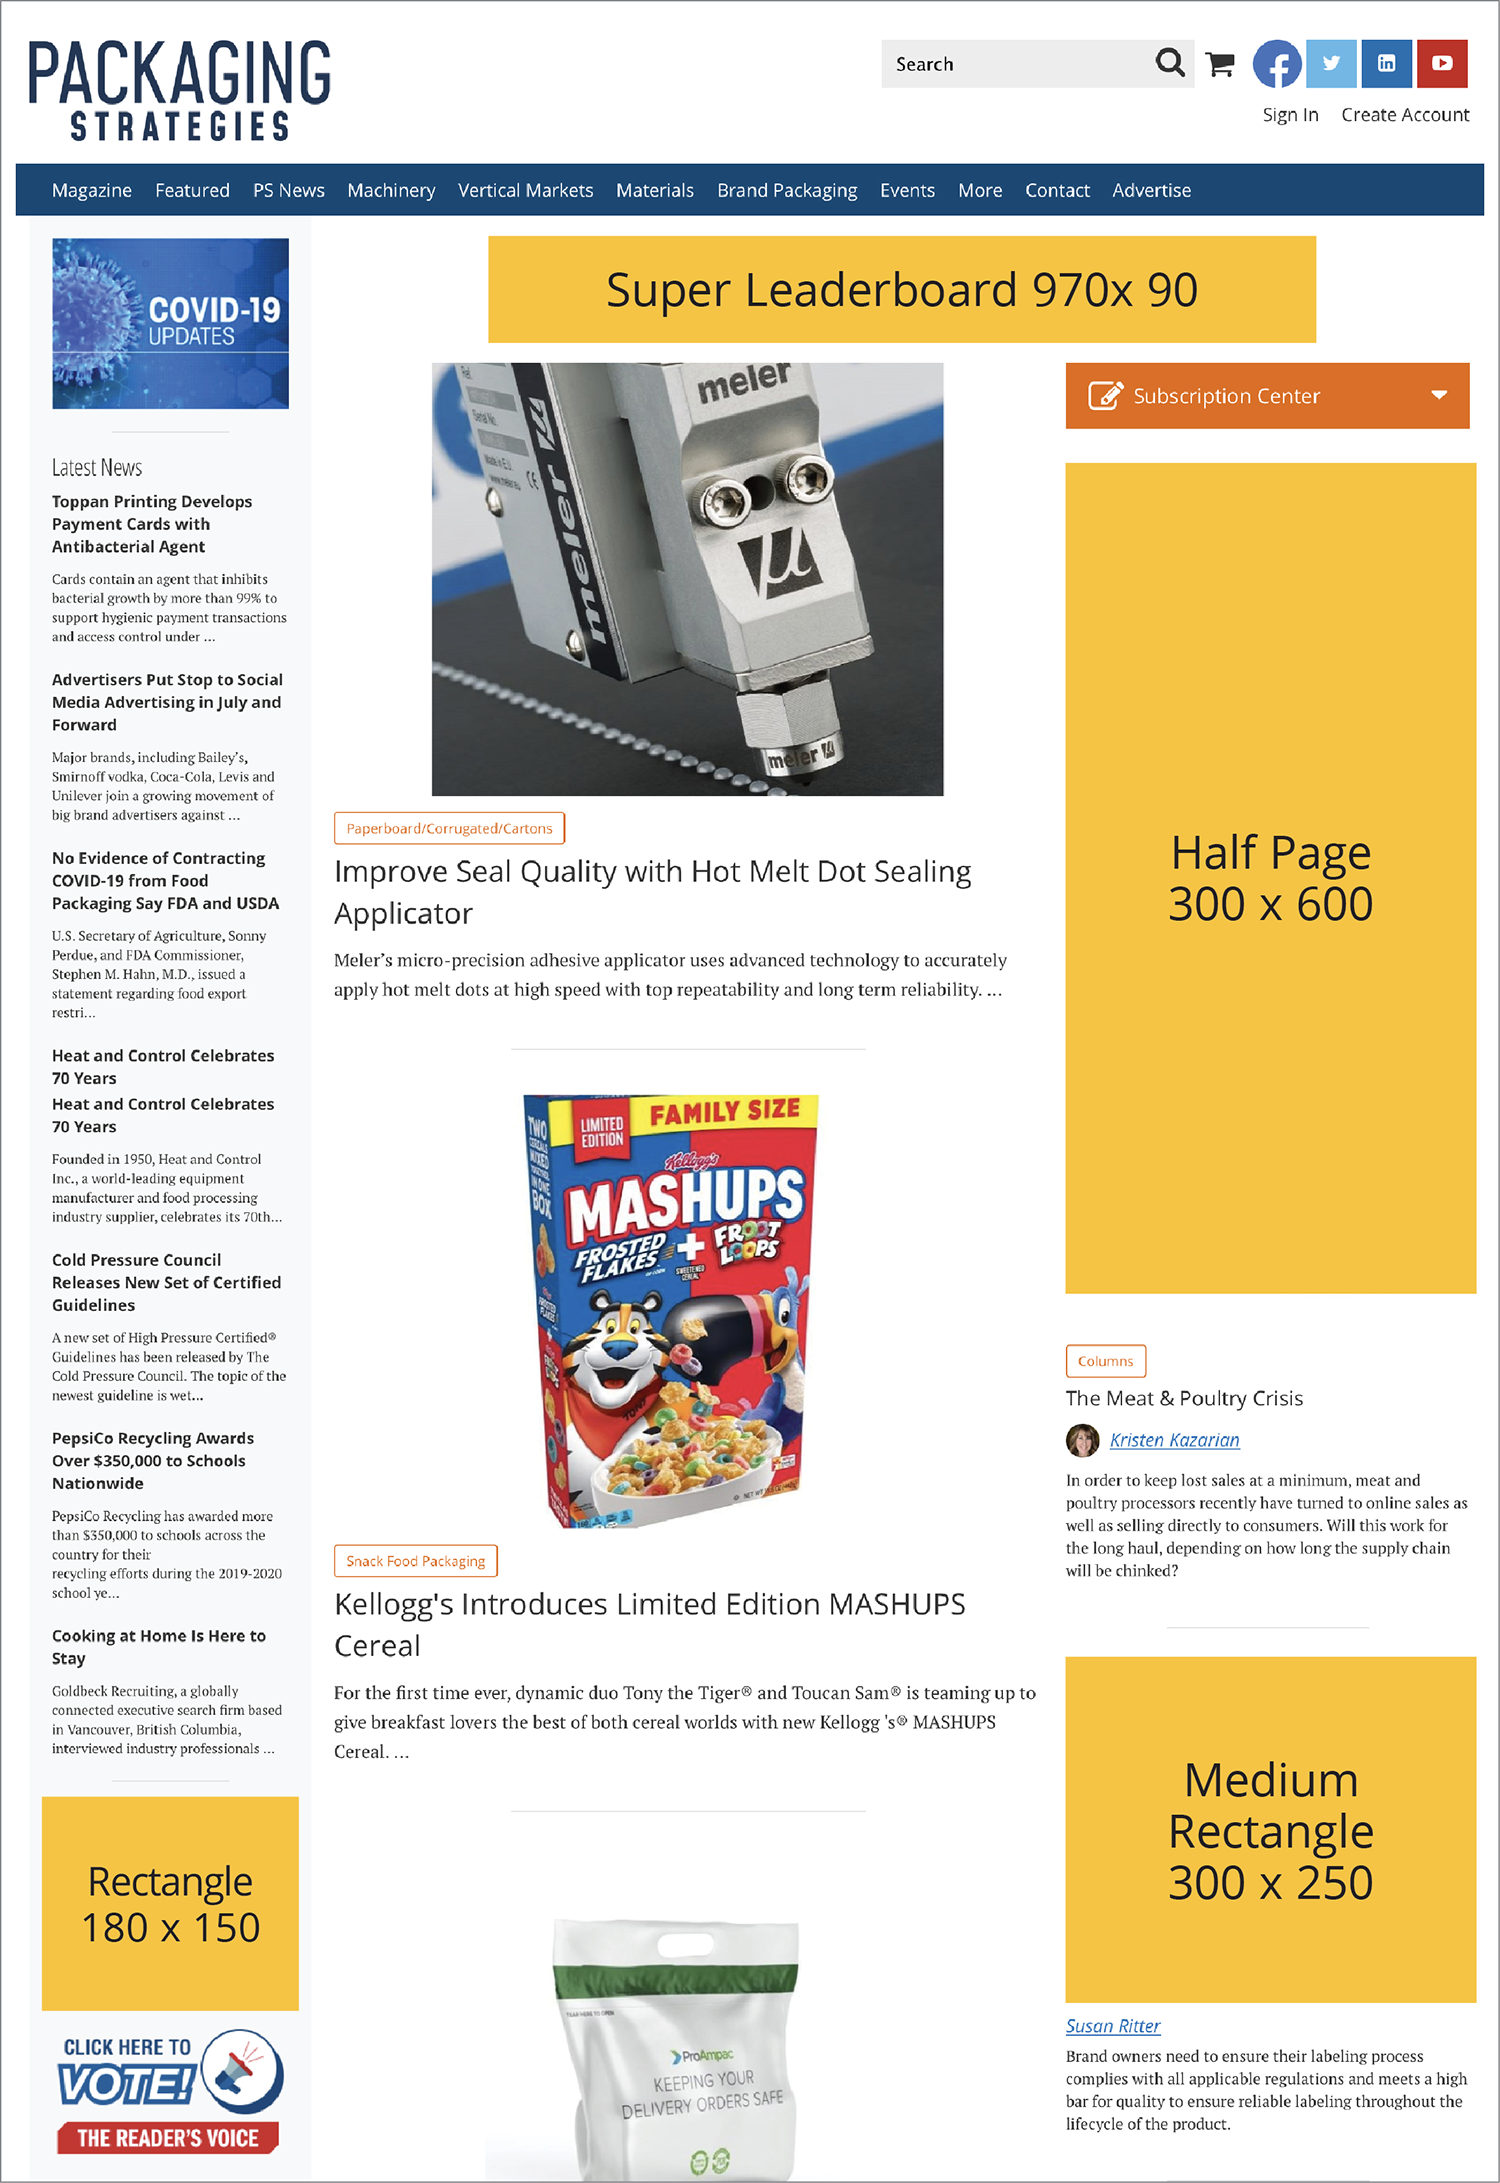 Packaging Strategies' homepage ads